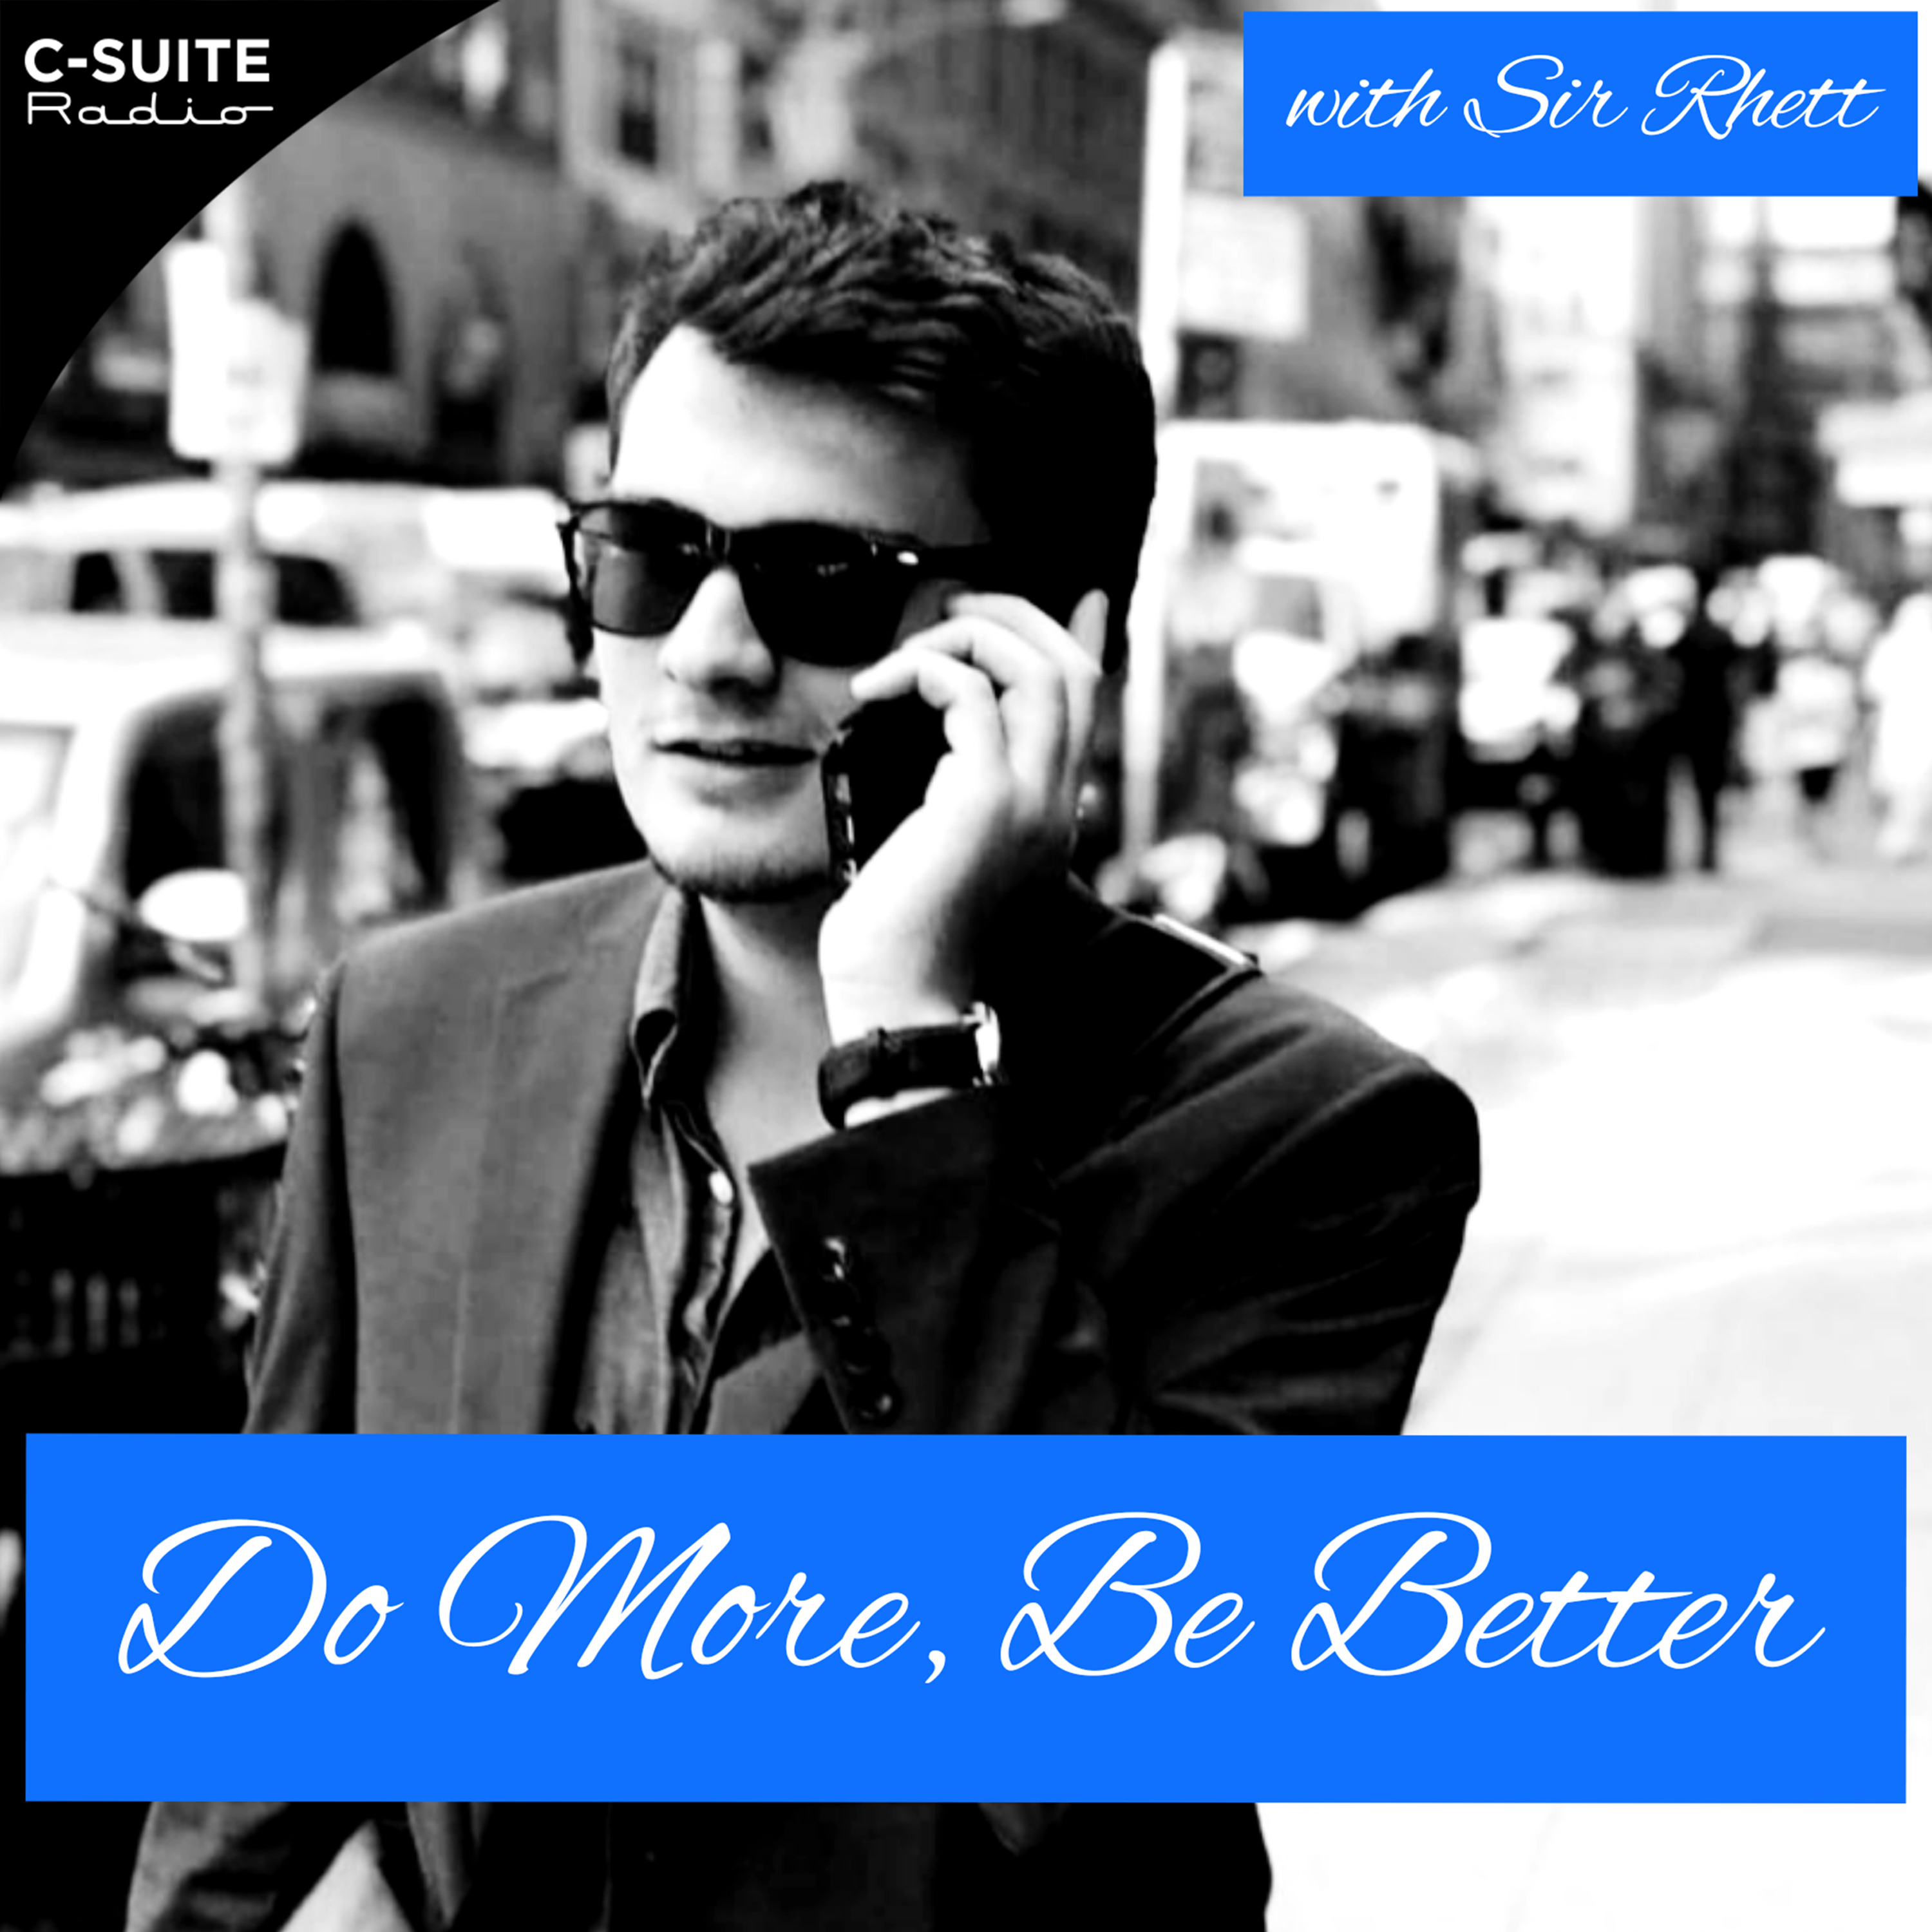 Do More, Be Better